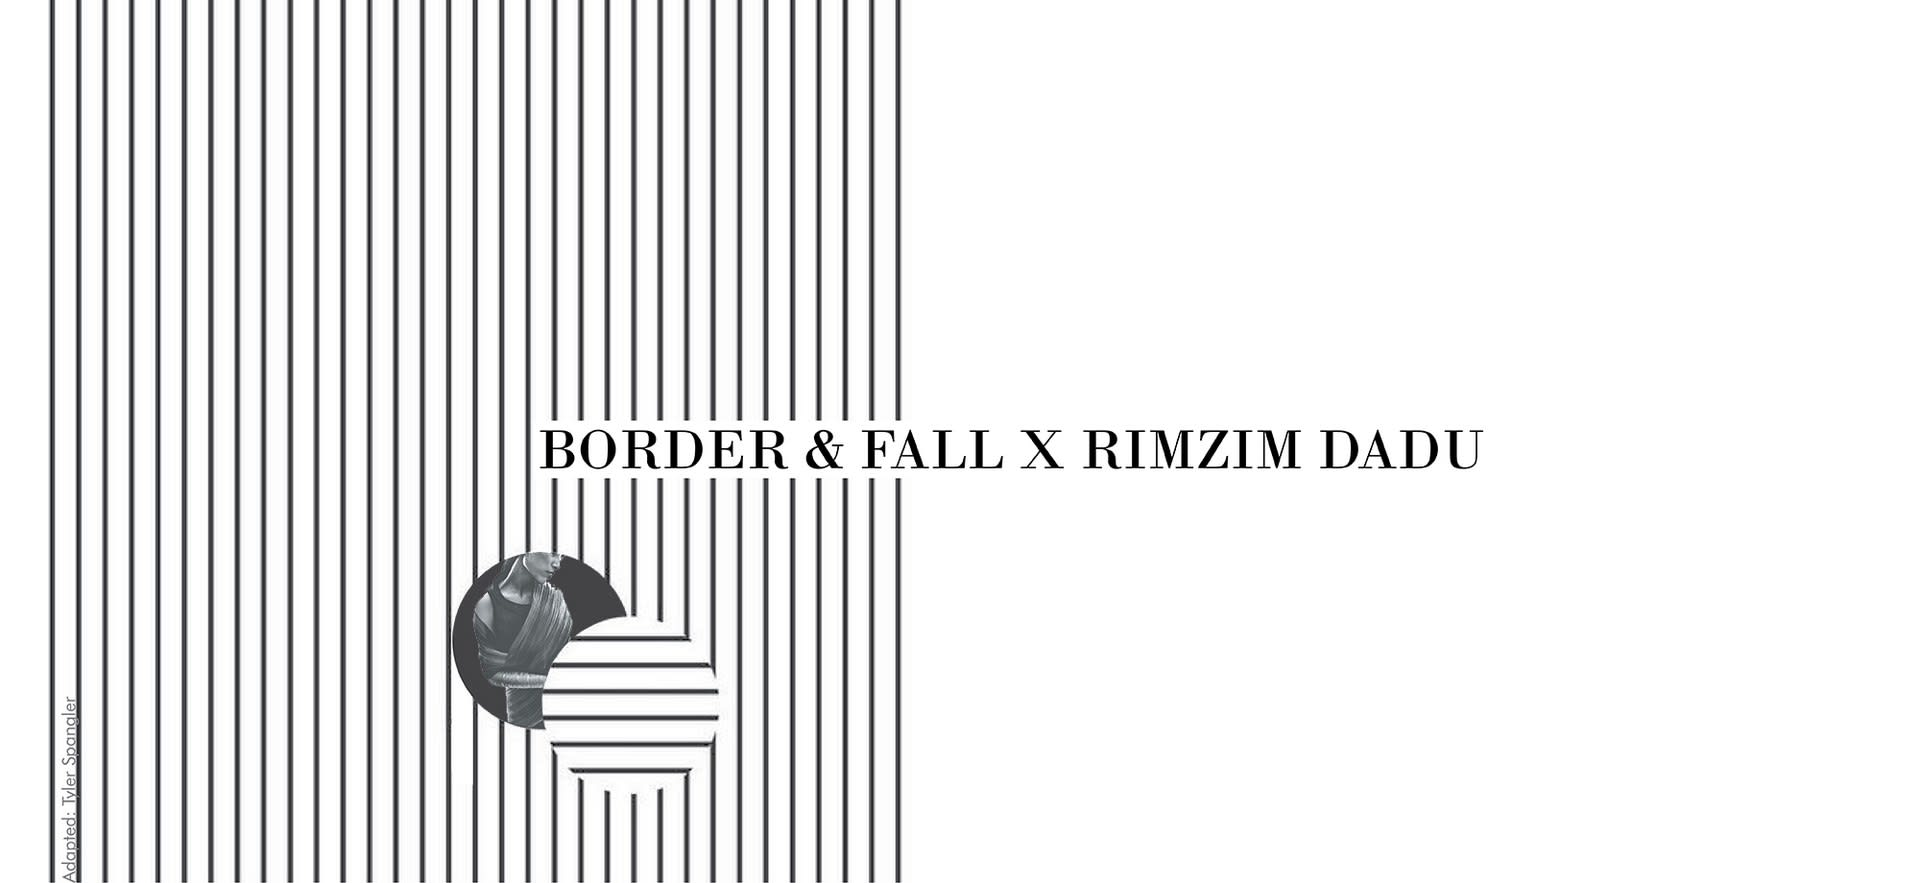 Border & Fall x Rimzim Dadu